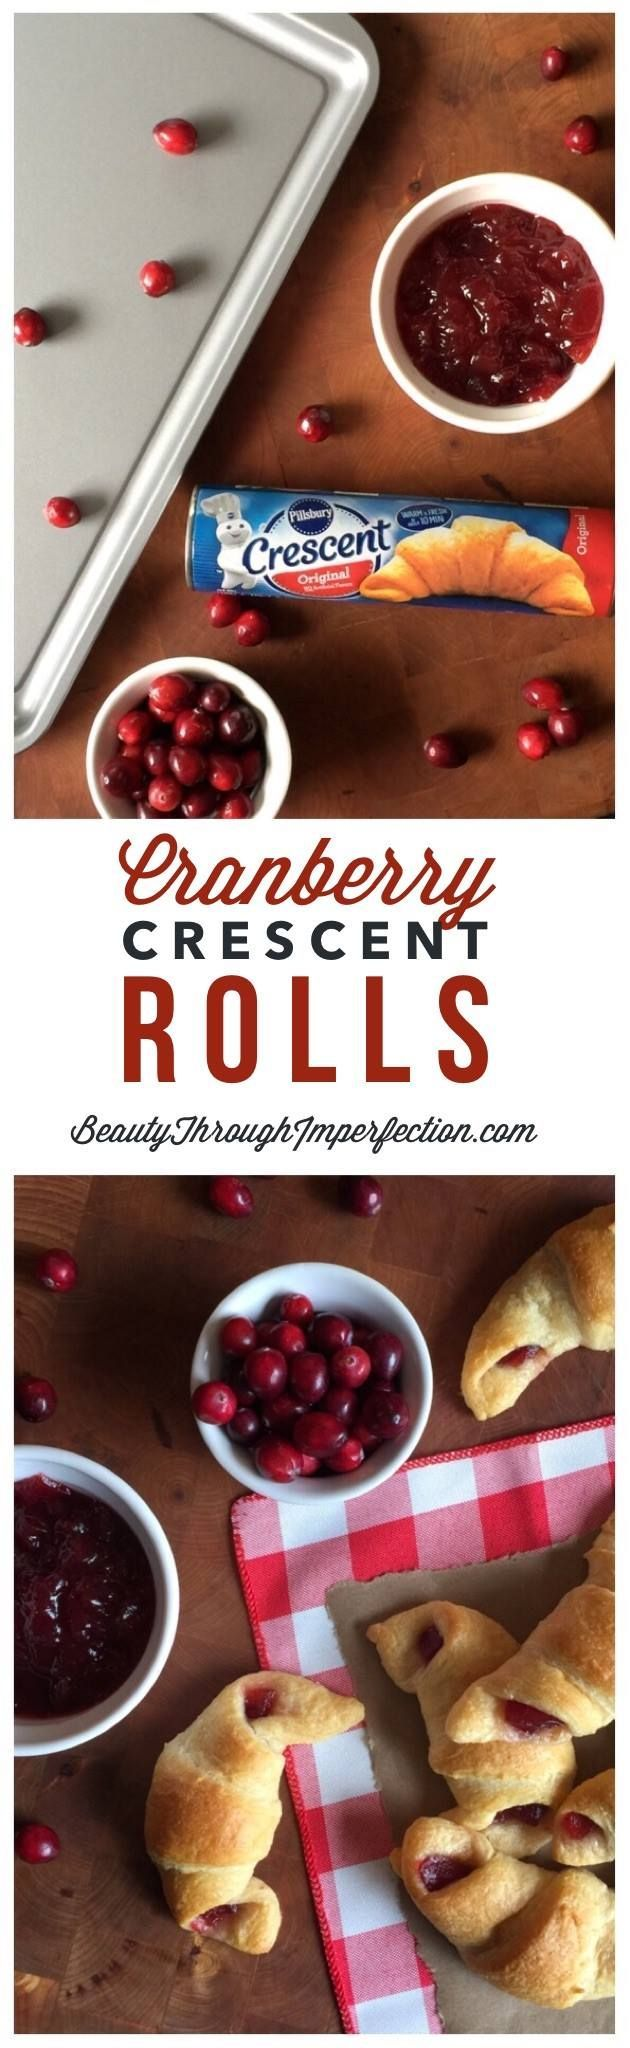 Cranberry Crescent Rolls - Great kid friendly Thanksgiving recipe or Christmas recipe. This is so easy even preschoolers can make it and always a crowd pleaser!